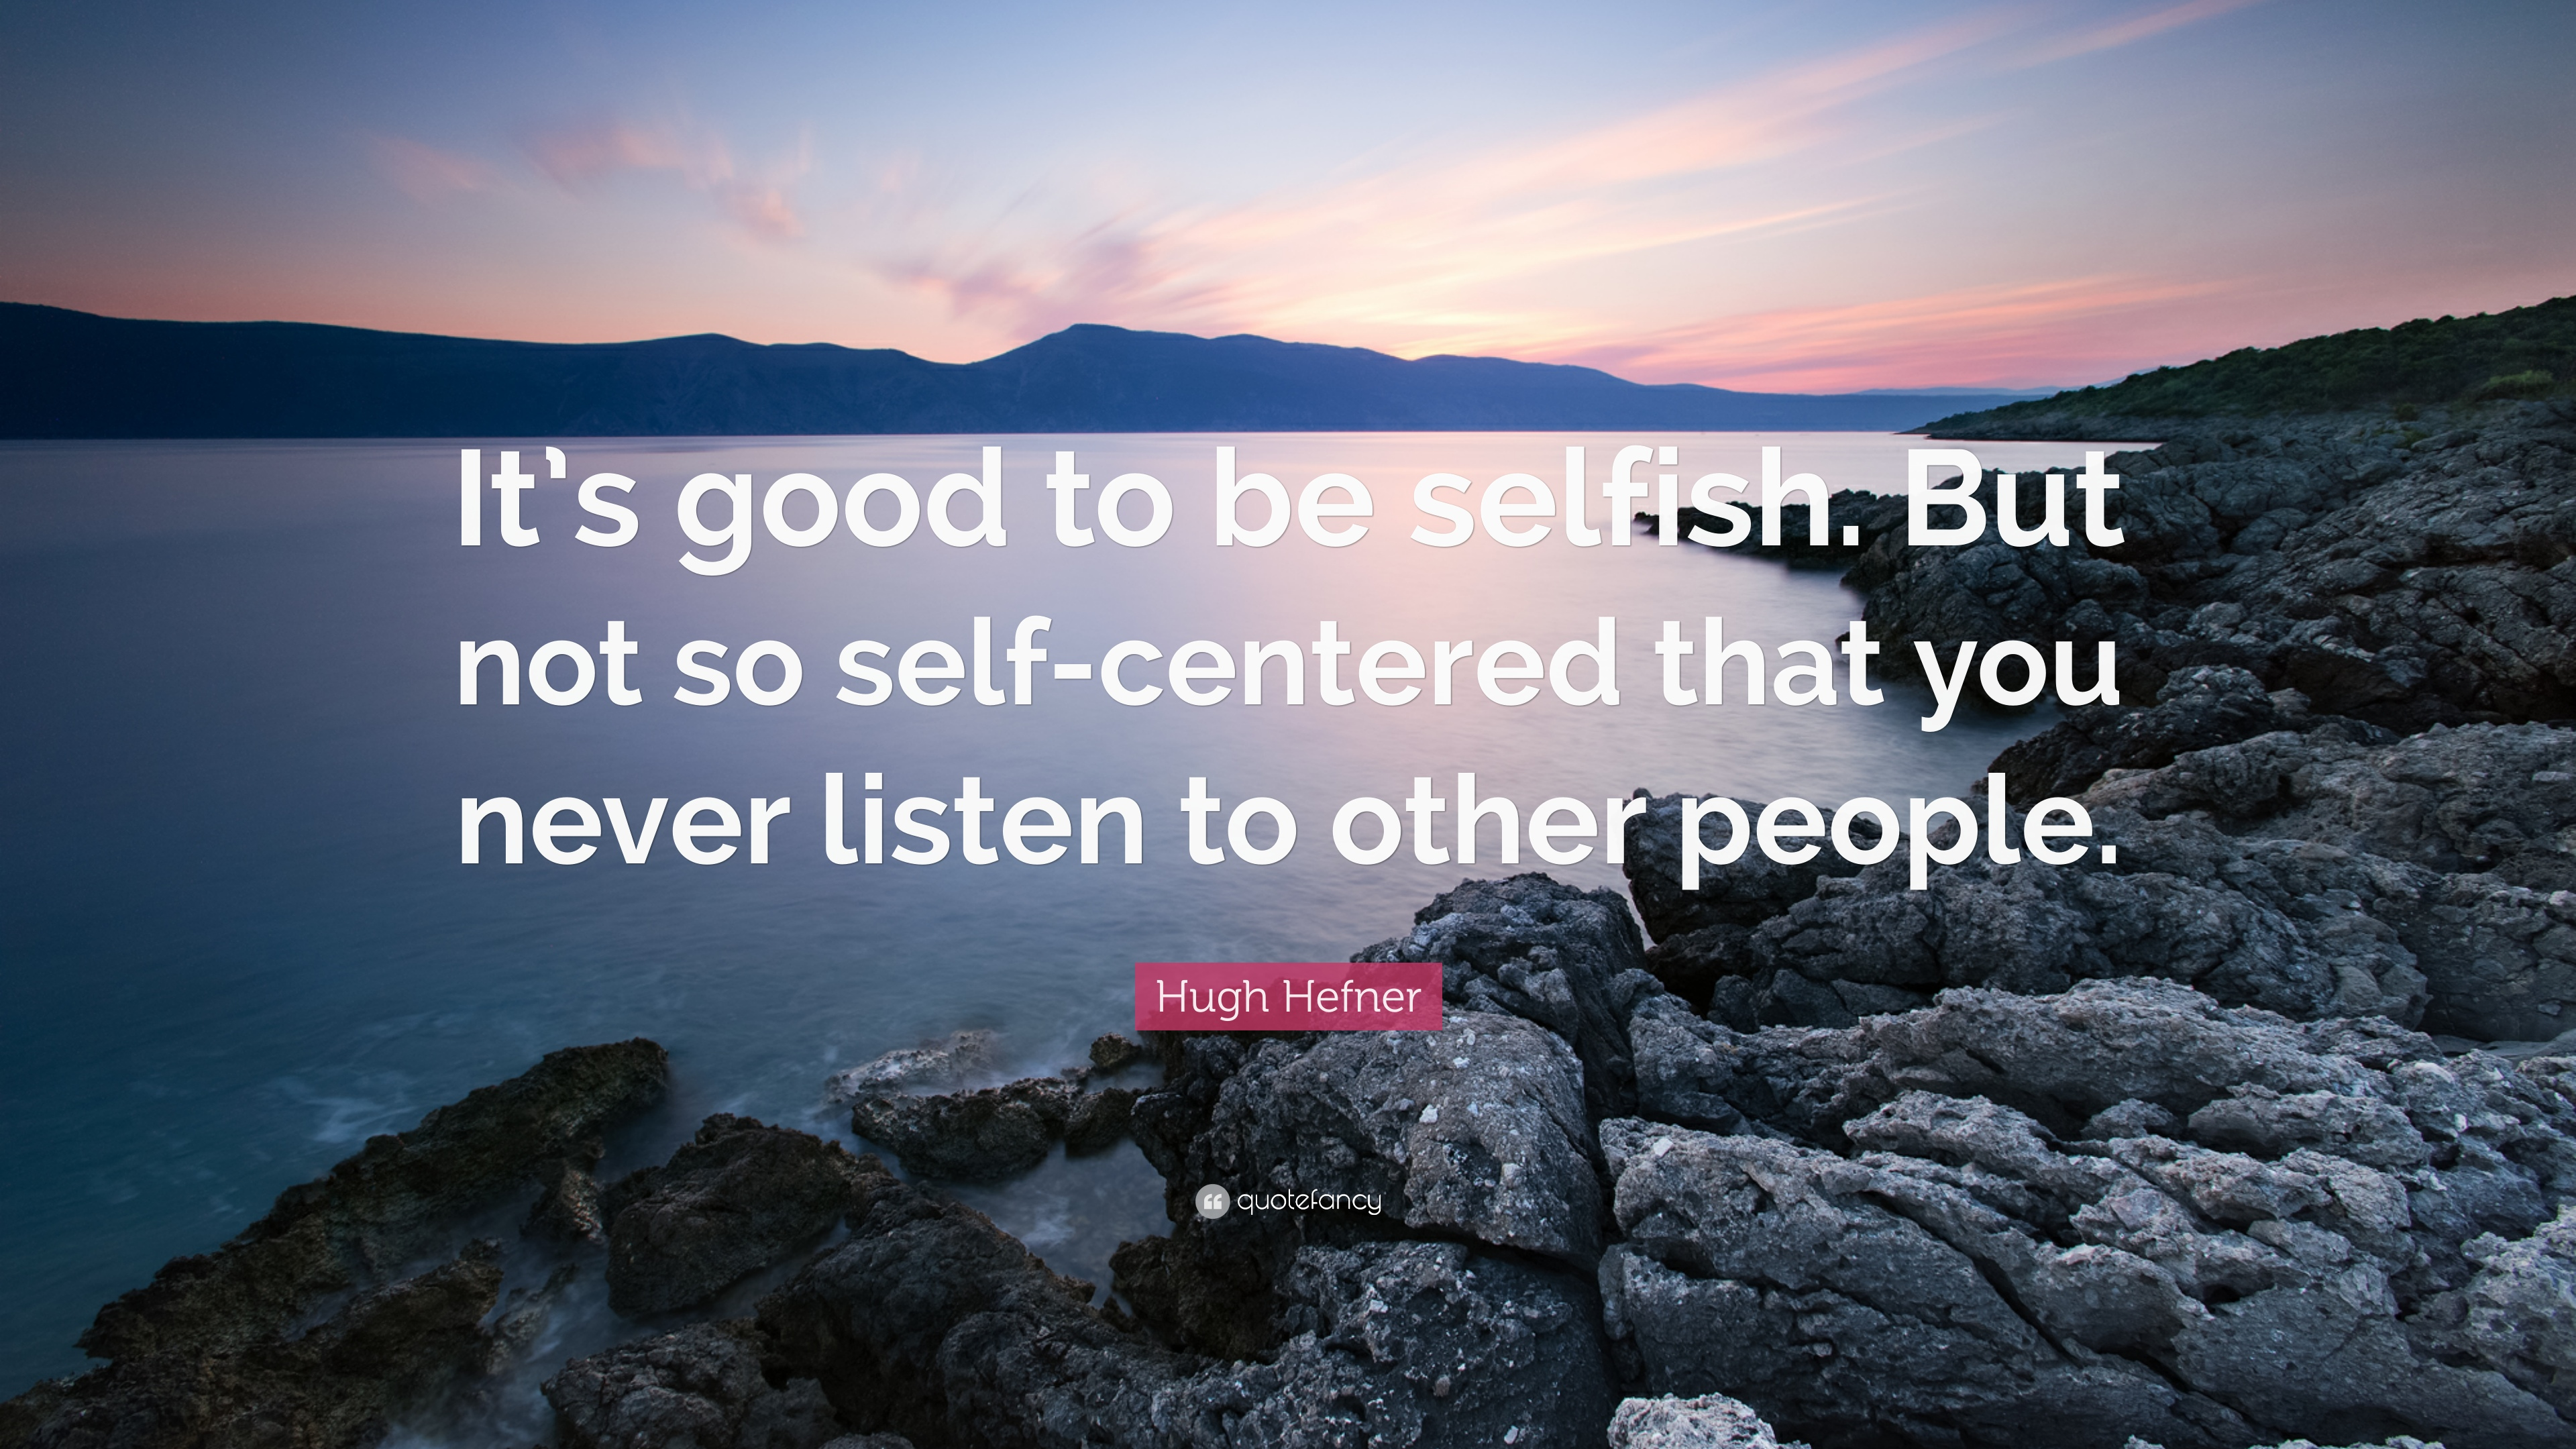 """Hugh Hefner Quote: """"It's good to be selfish. But not so self-centered that  you never listen to other people."""" (7 wallpapers) - Quotefancy"""